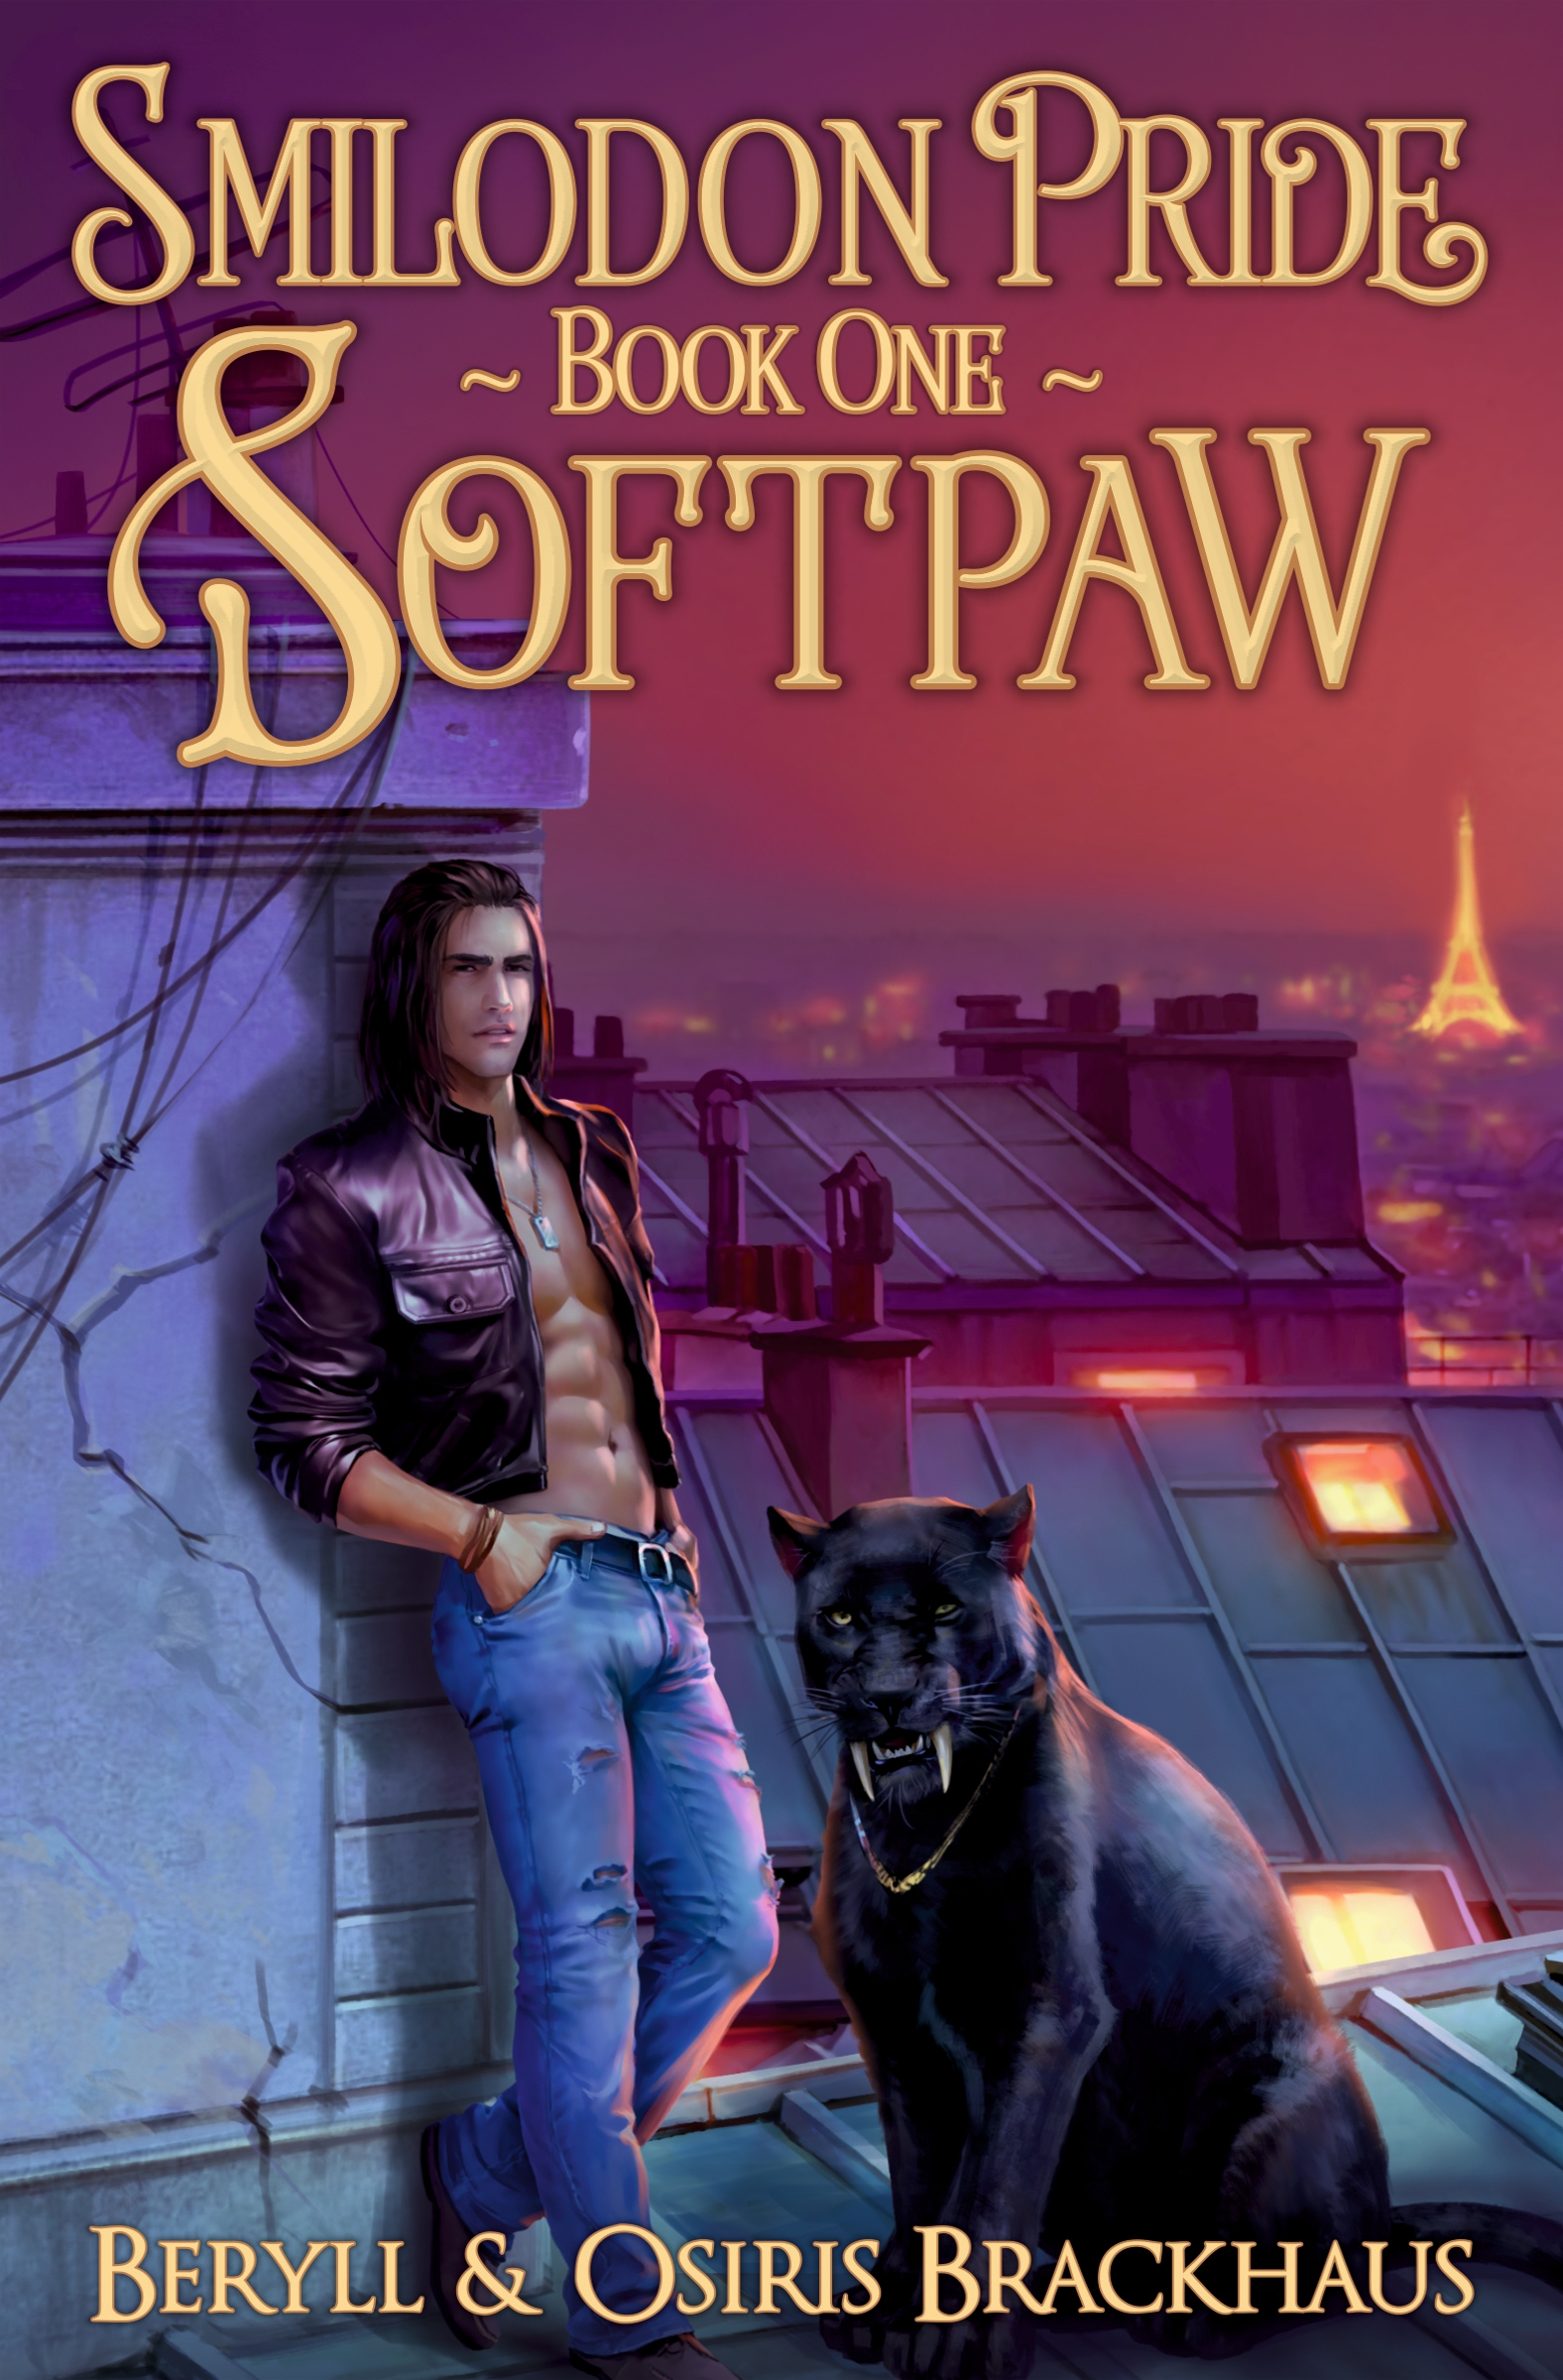 Softpaw - Cover